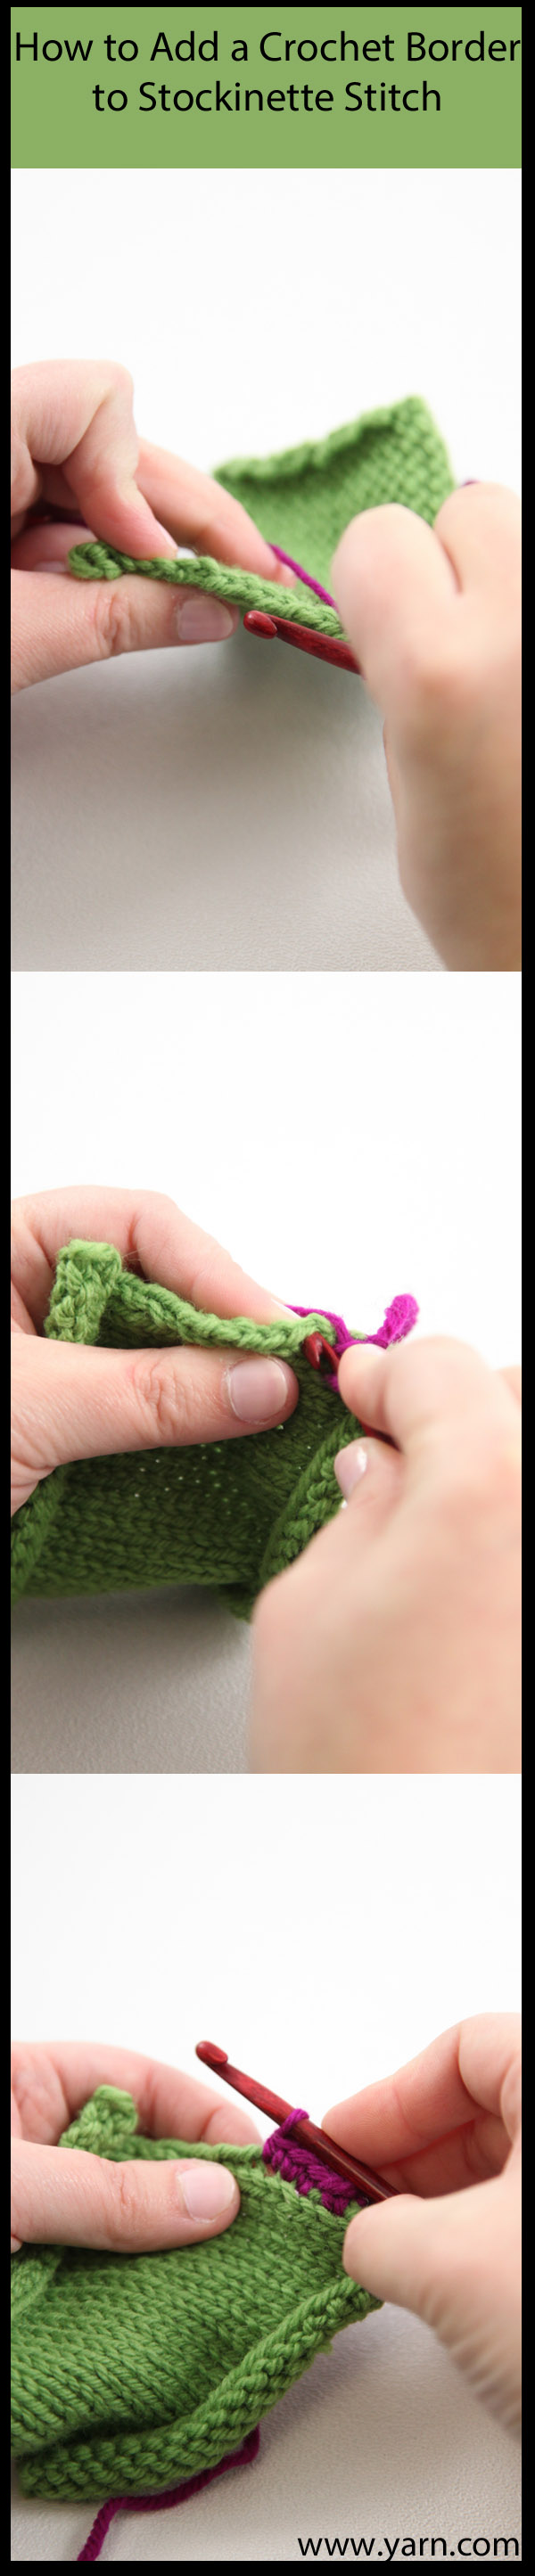 Adding Extra Stitches To My Knitting : WEBS Yarn Store Blog   Tuesday s Crochet Tip   Adding a Crochet Border to Kni...